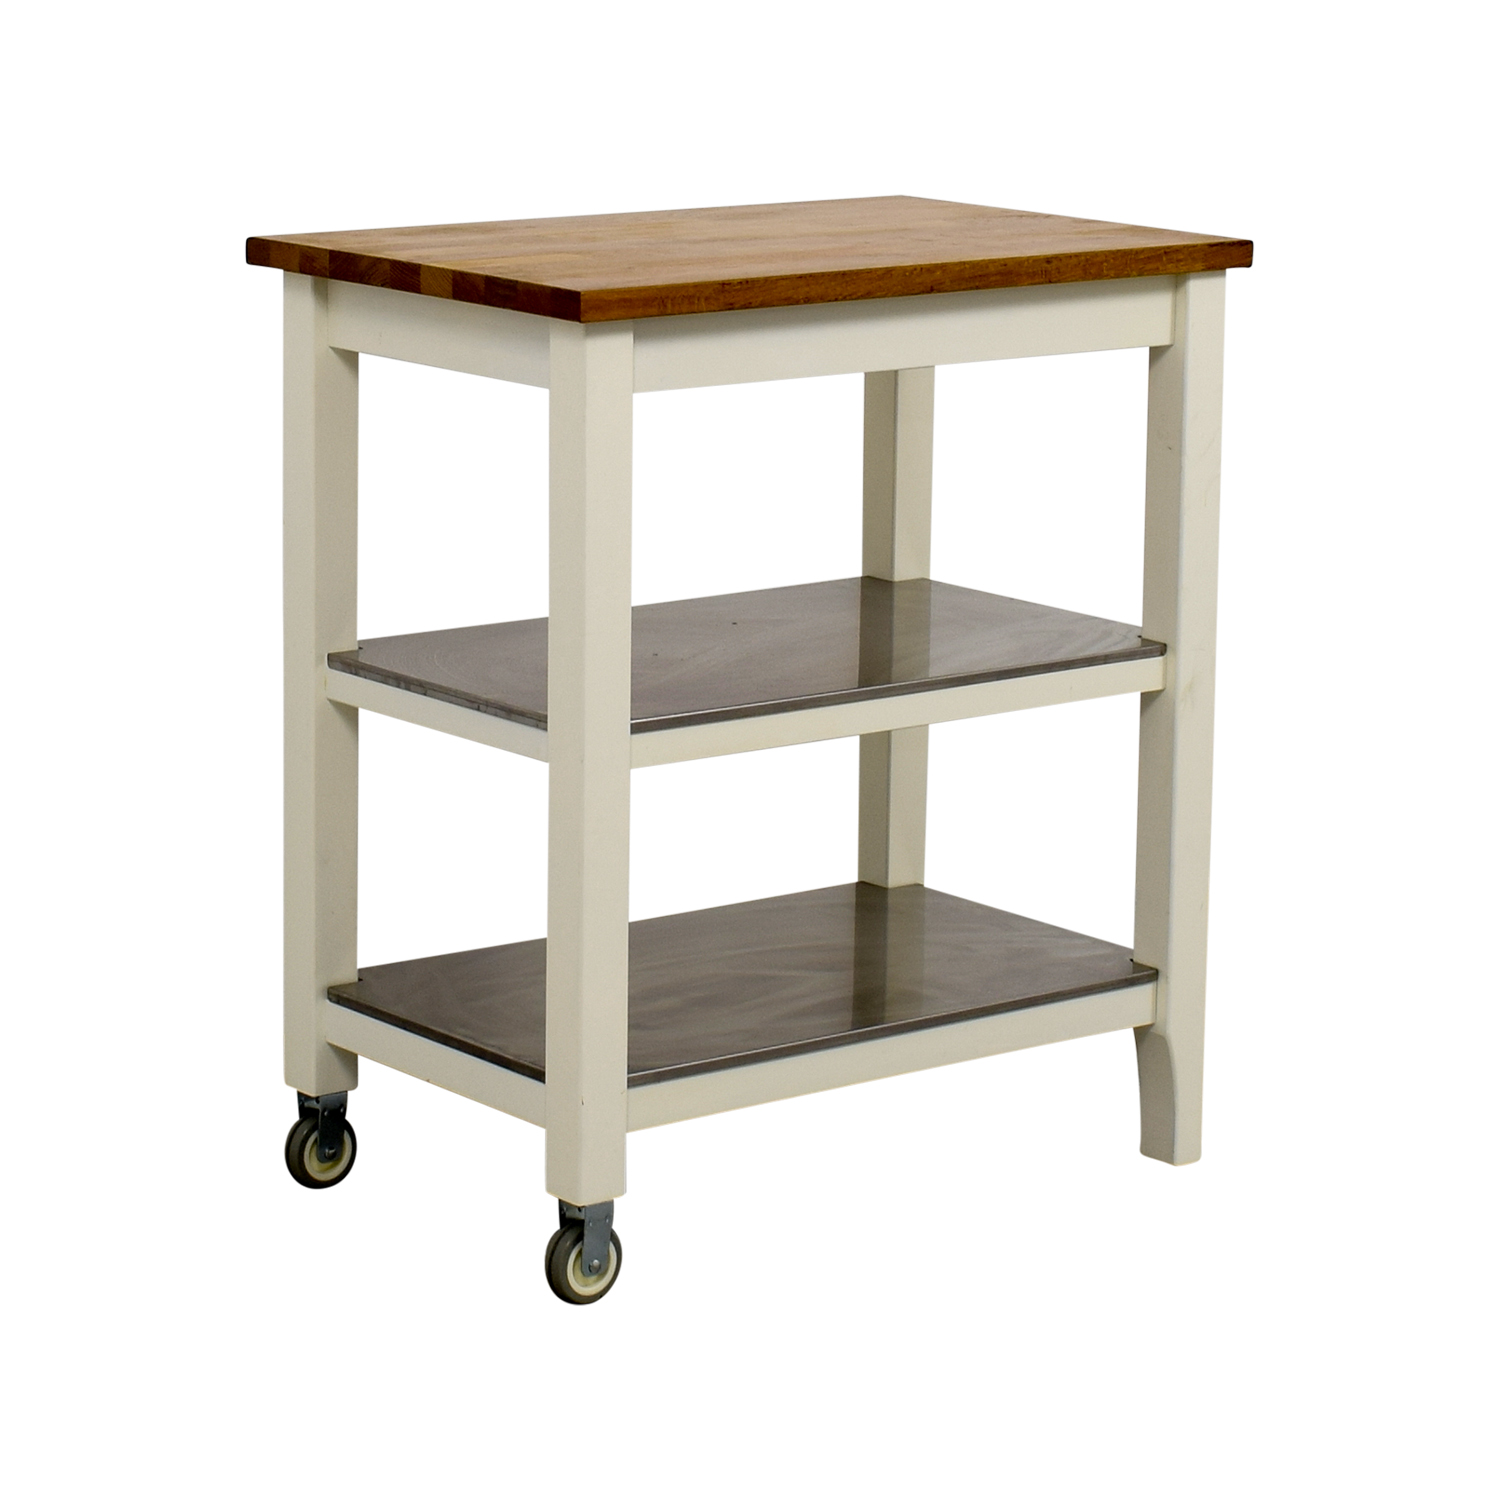 Today 2020 11 23 Surprising Ikea Kitchen Cart Best Ideas For Us